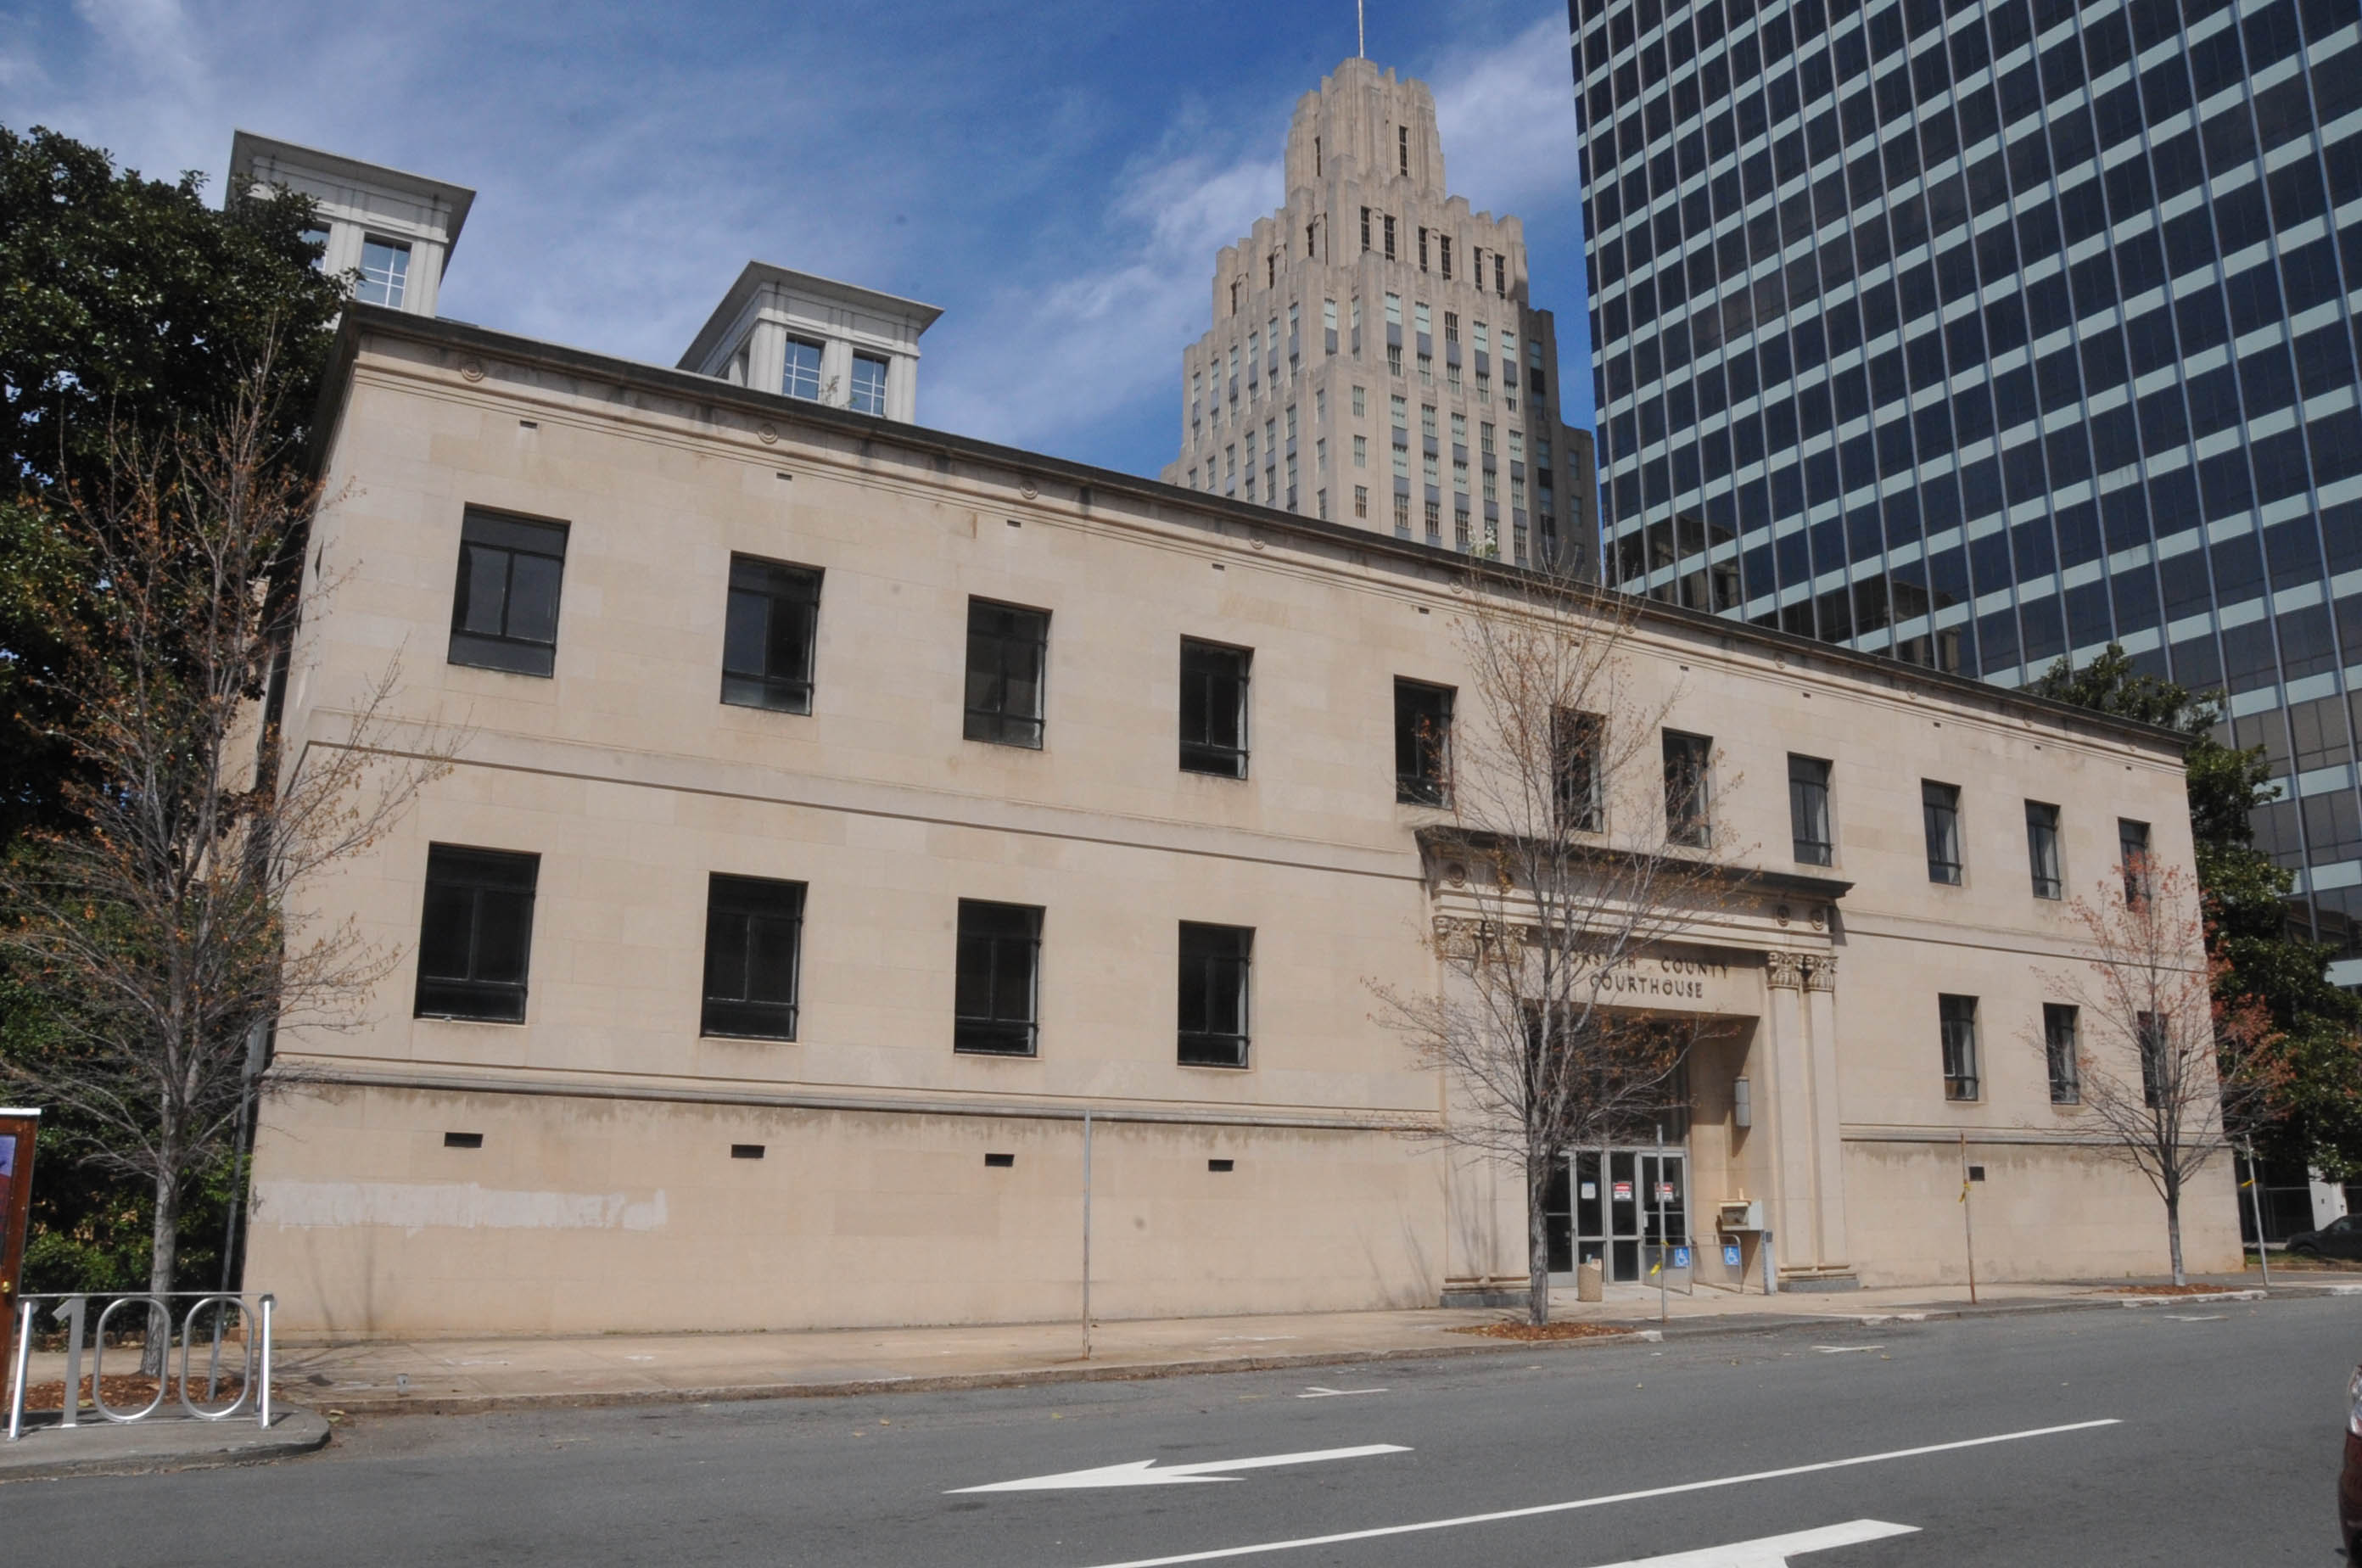 Forsyth County Courthouse - Wikipedia